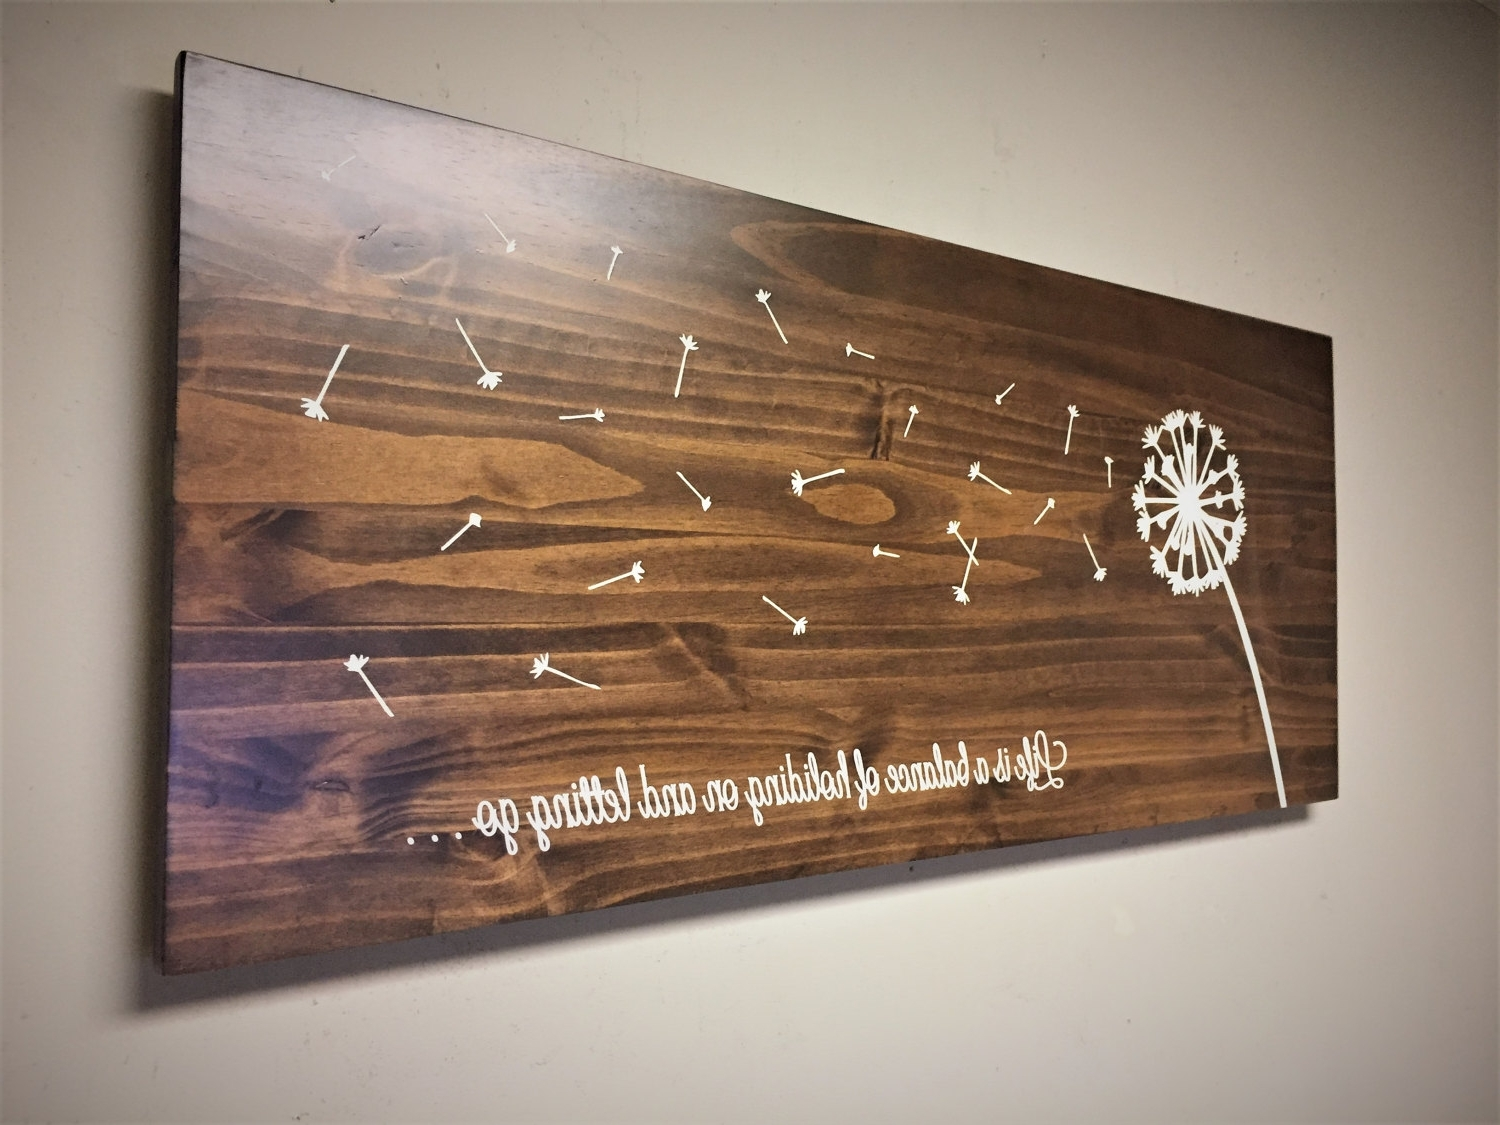 Dandelion Home Decor, Wood Wall Art, Dandelion Art, Rustic Wooden Within Most Up To Date Stained Wood Wall Art (Gallery 2 of 15)